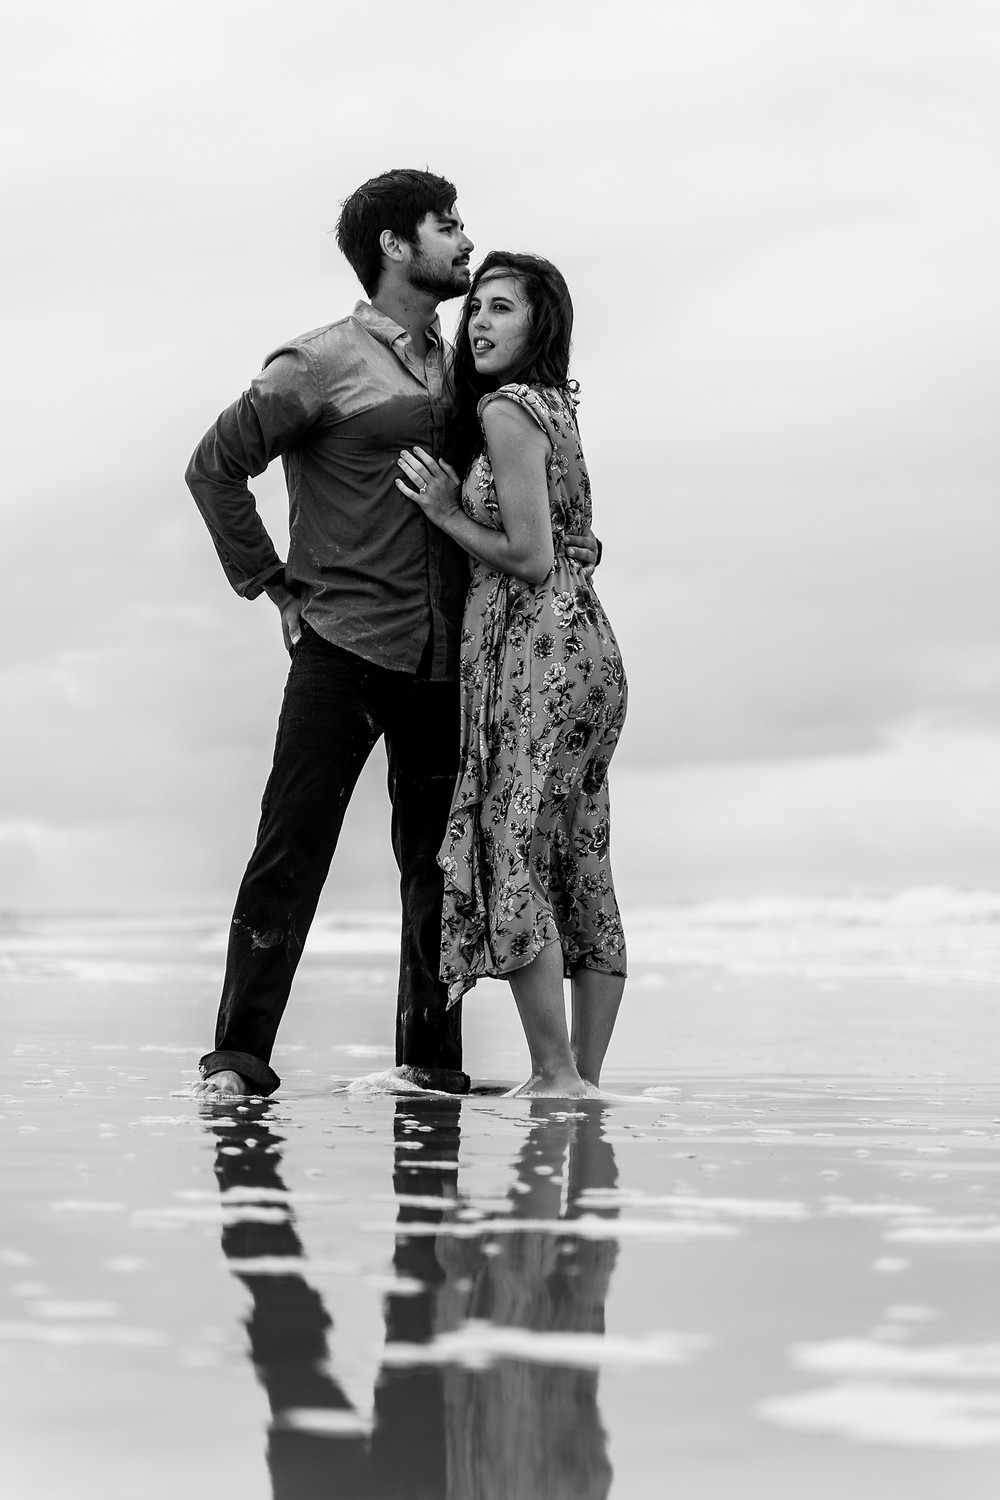 Sexy couple on the beach in North East Florida during an enagement photo shoot.